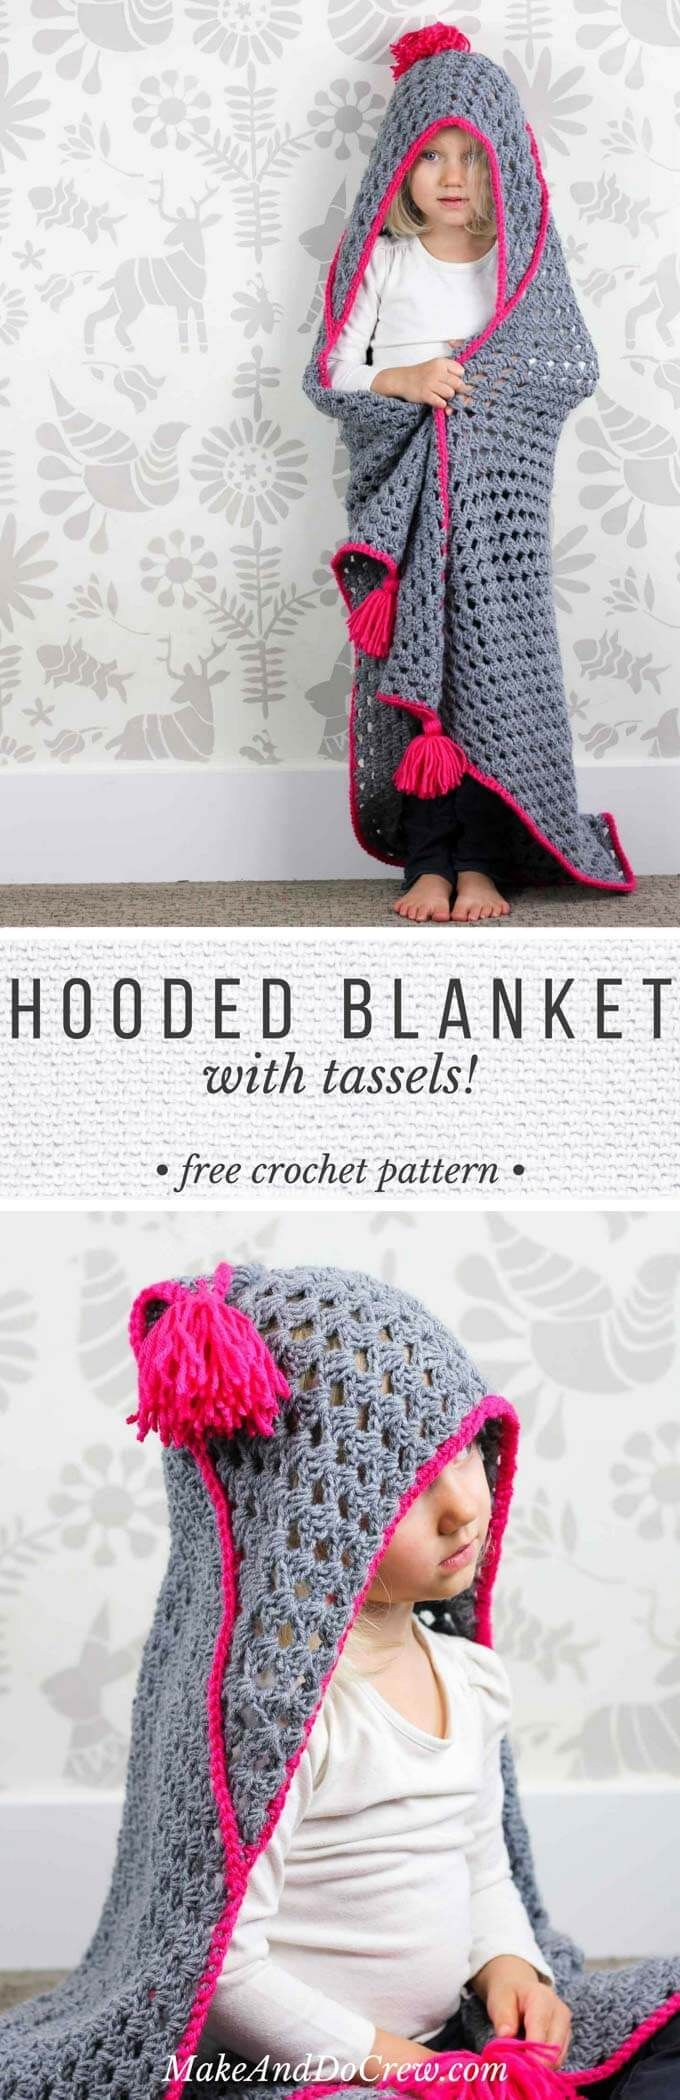 """Based on a large granny square, this free crochet hooded baby blanket pattern makes an easy and inexpensive baby shower gift or crochet charity project. Pattern includes newborn - 6 months size and 6 months - child size. Made with Lion Brand Pound of Love yarn in """"Oxford Grey"""" and Vanna's Choice in """"Rose Shocking."""""""